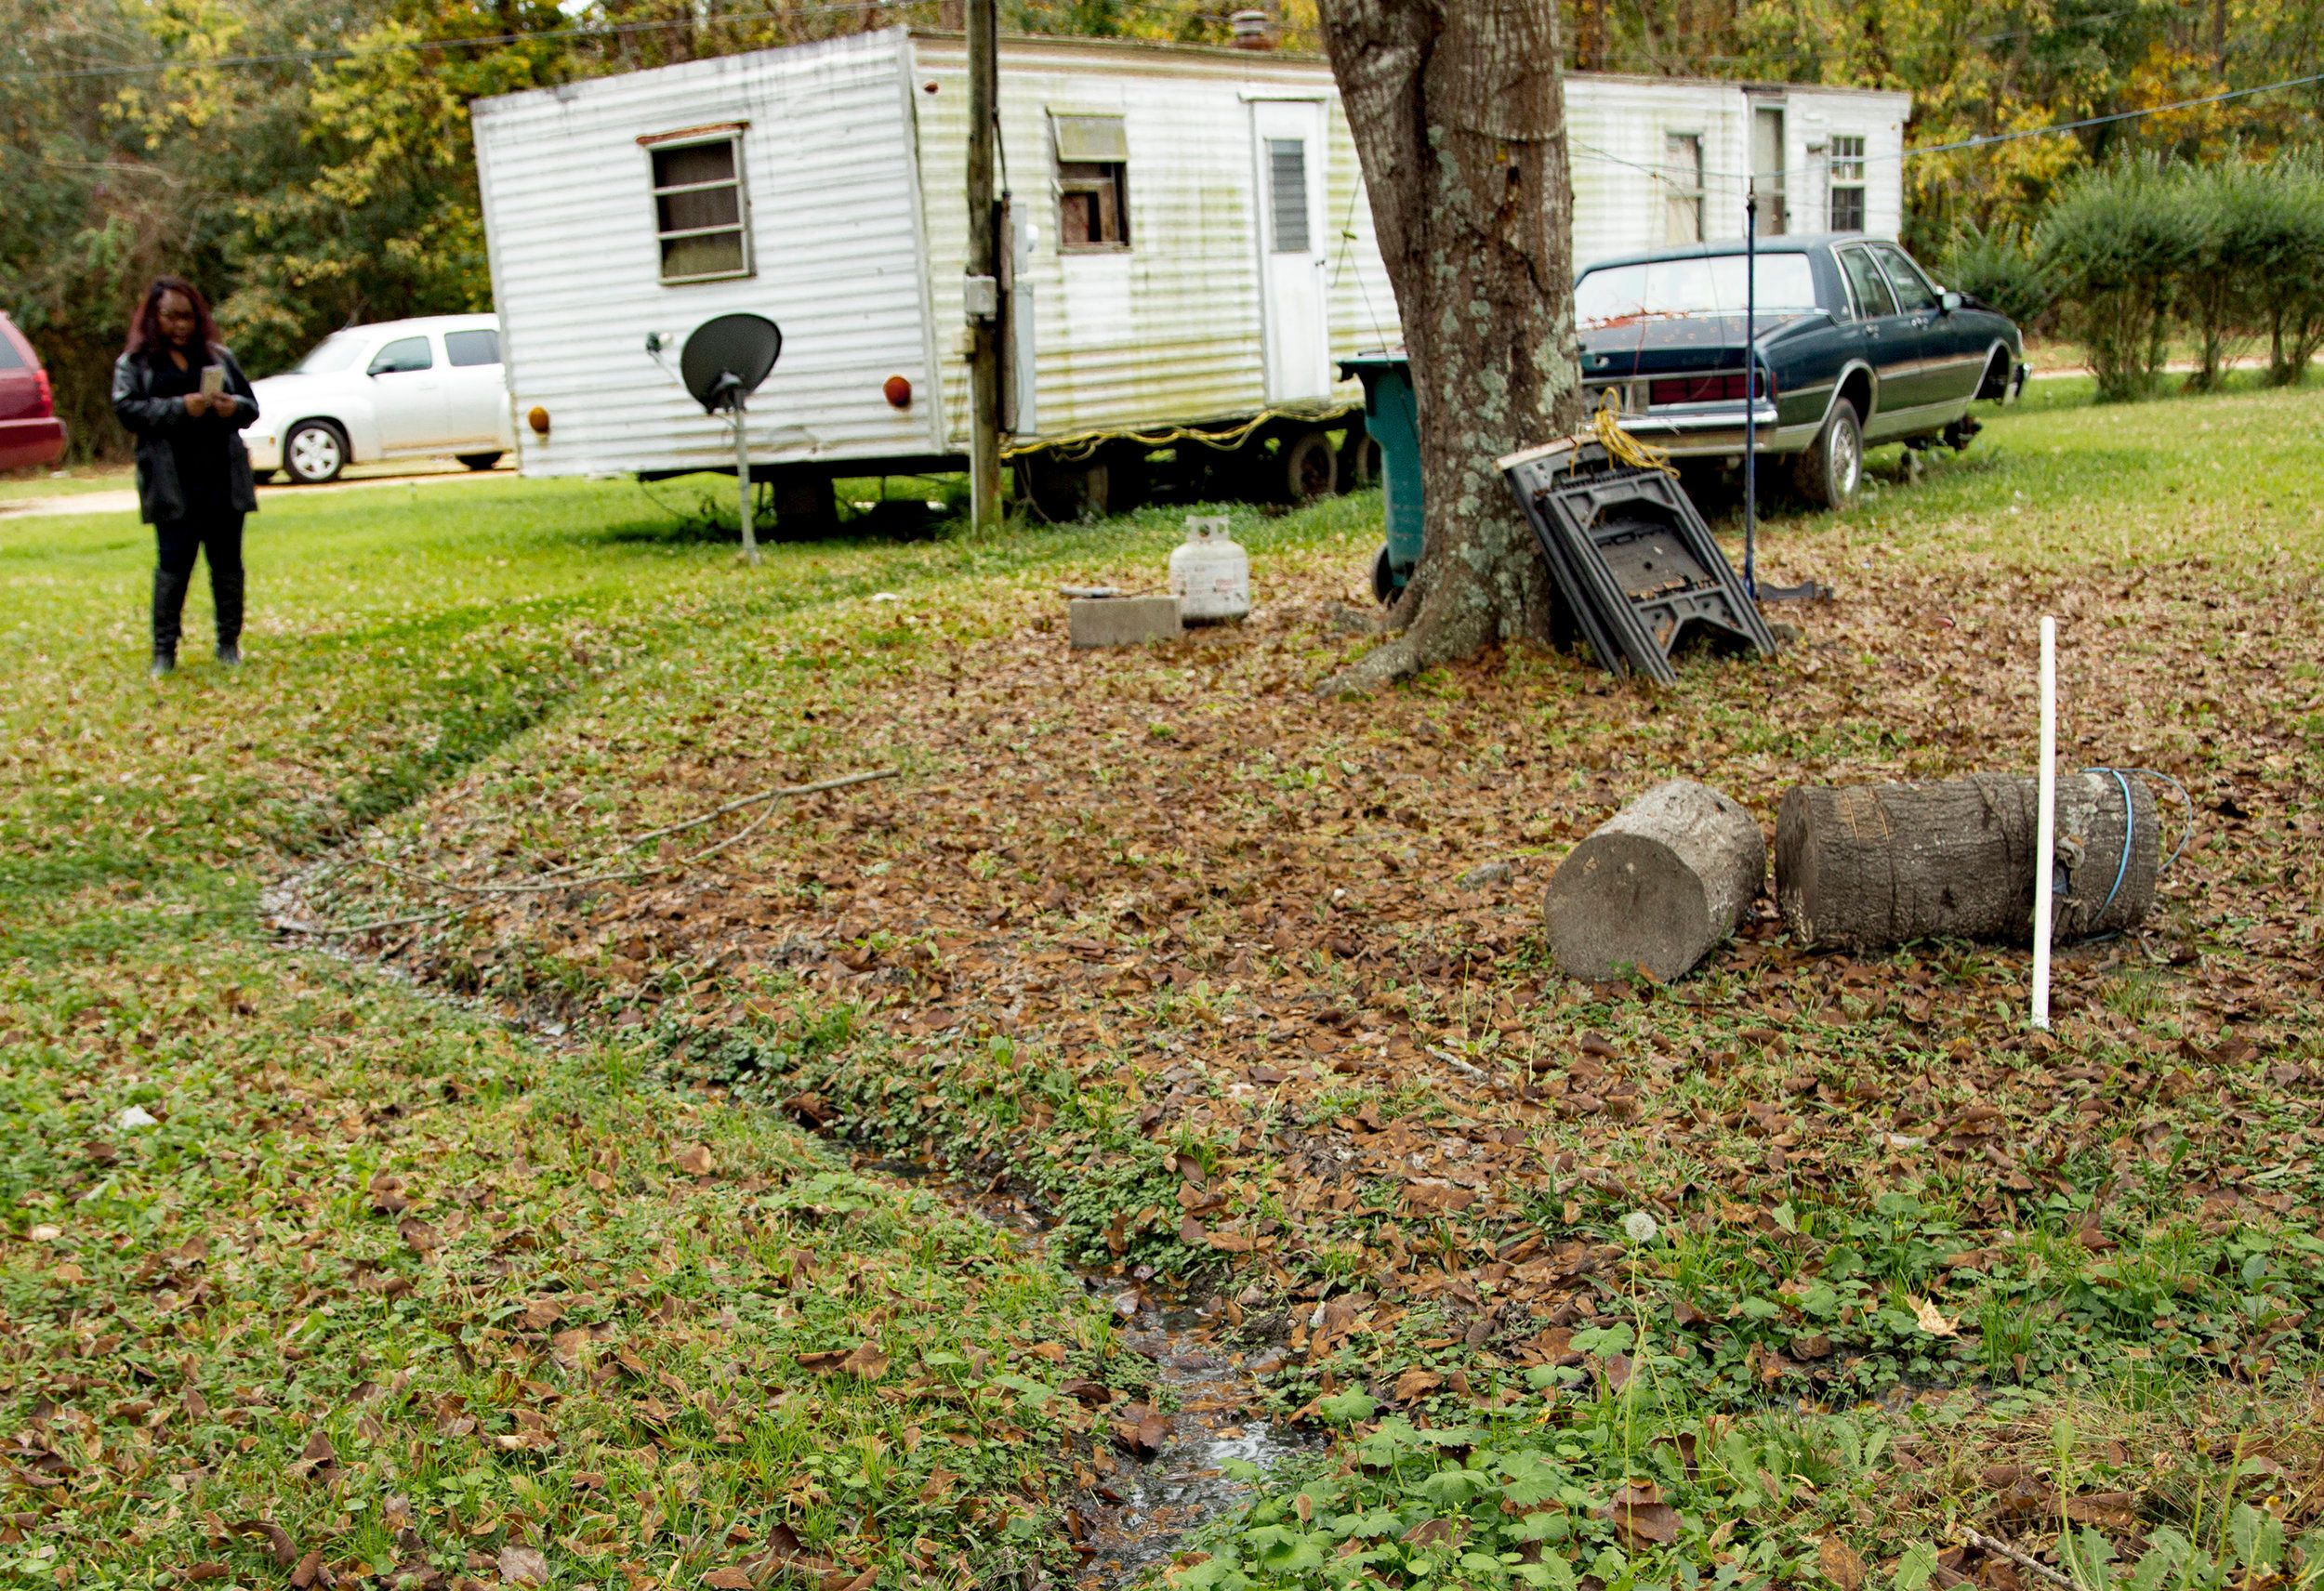 Wonderful An Open Sewer Carries Waste From A Mobile Home Toward The Woods At The Edge  Of